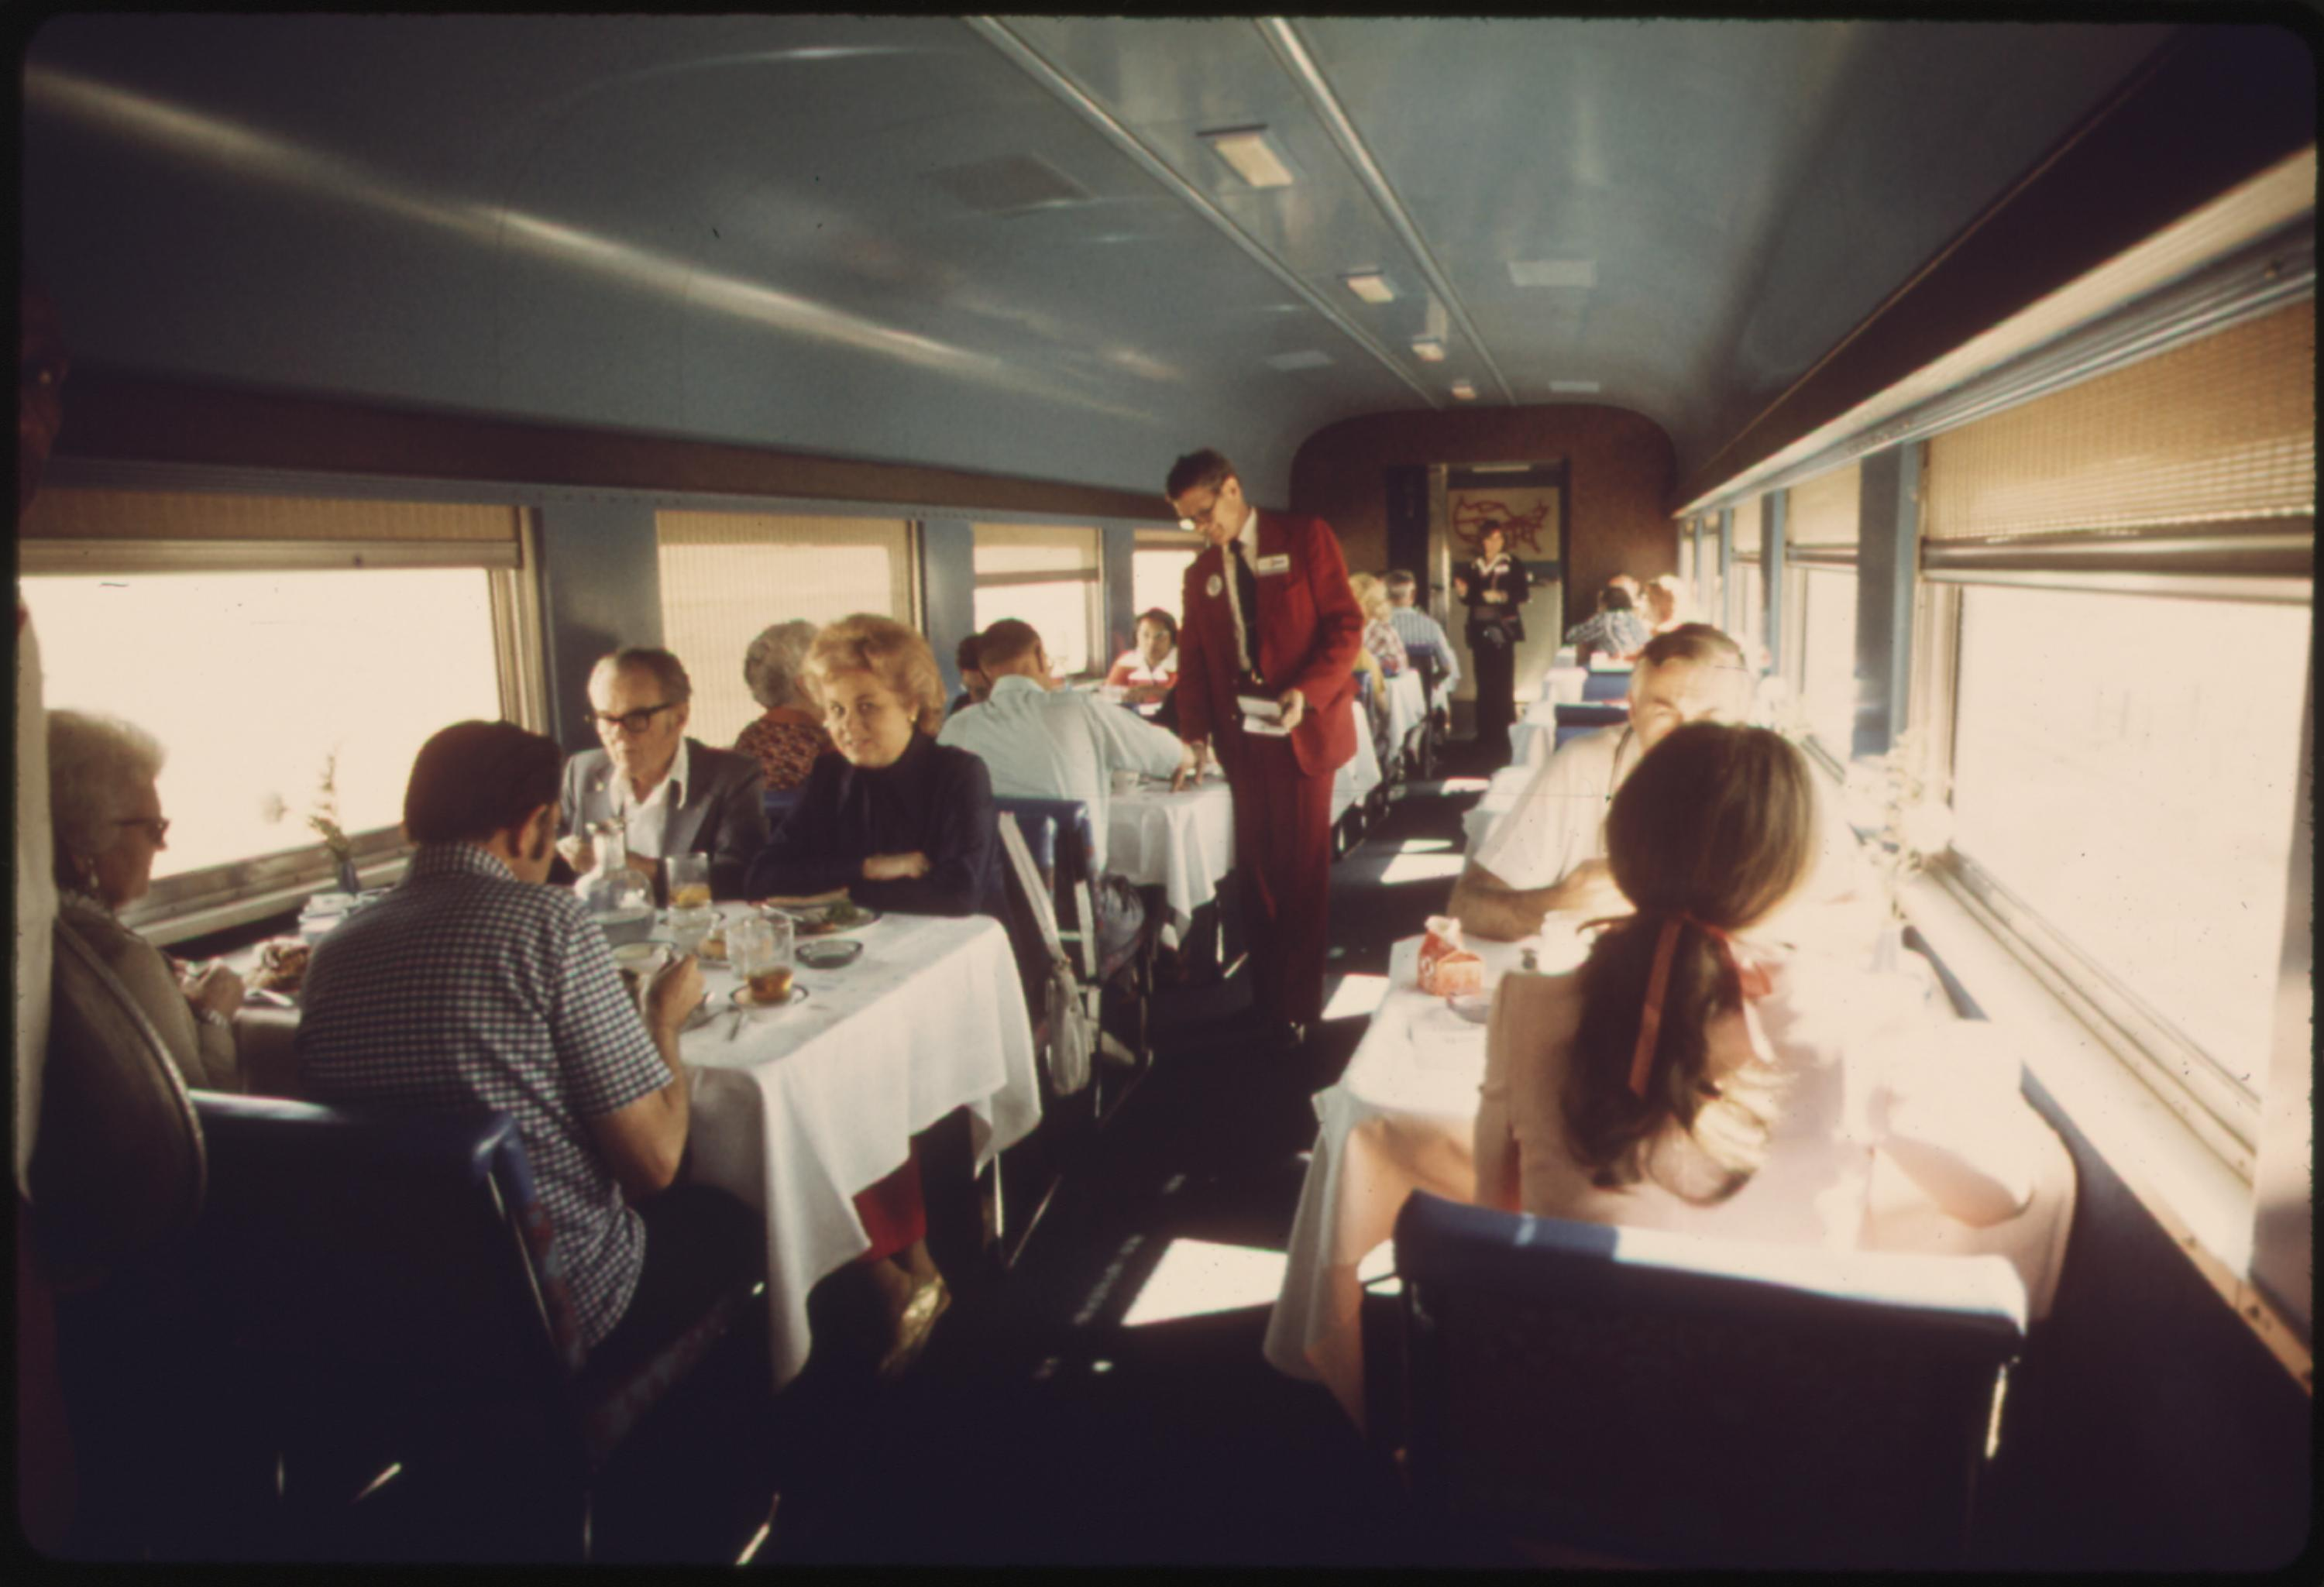 Dining car of the Southwest Limited is one of the highlights for passengers traveling between California and the midwest, June 1974